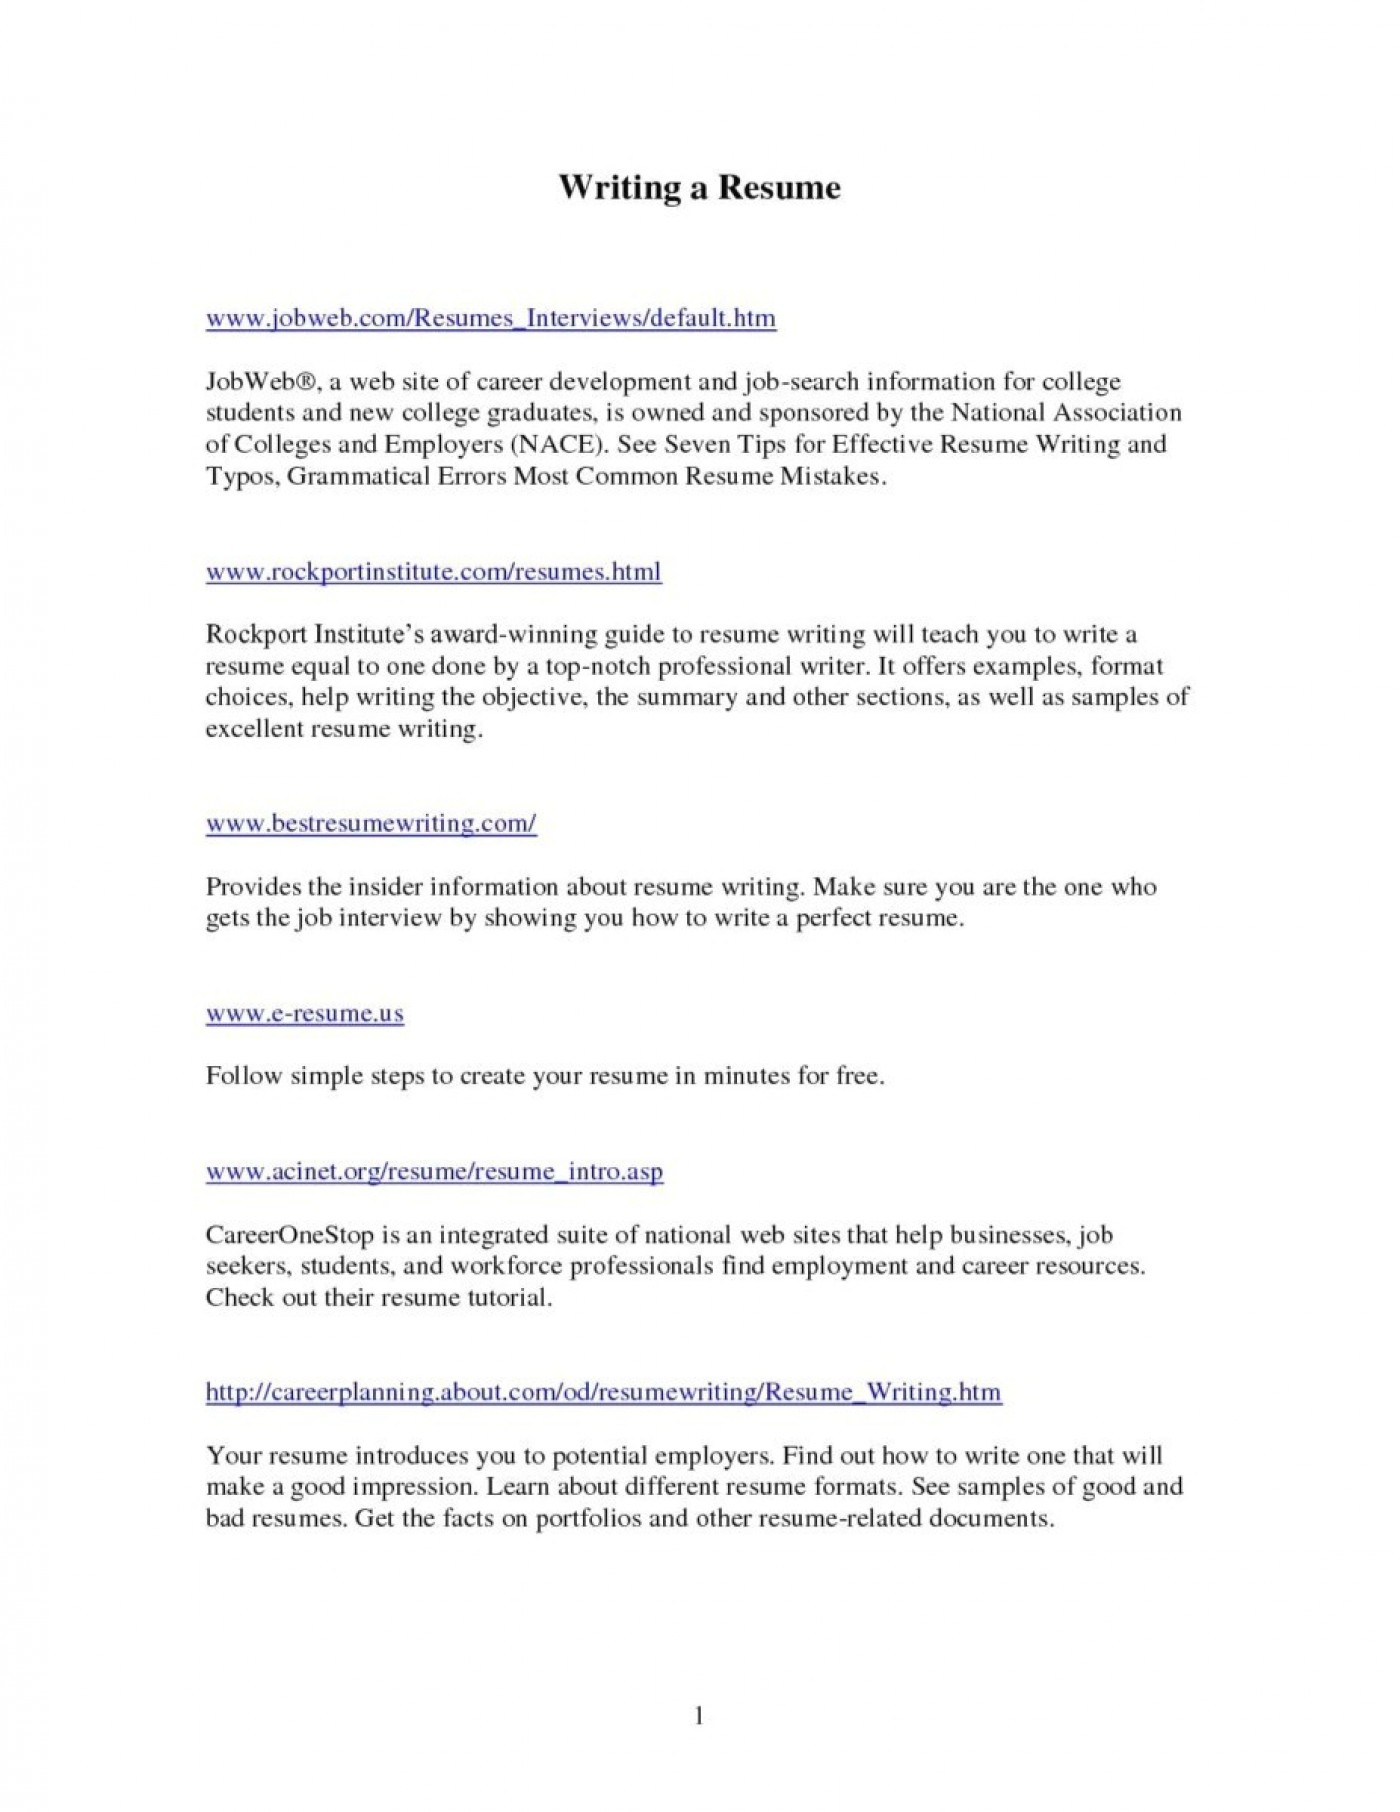 014 Research Paper Resume Writing Service Reviews Format Best Writers Inspirational Help Professional Of Free Services How Write Outstanding Outline To An For A Mla Ppt College 1400